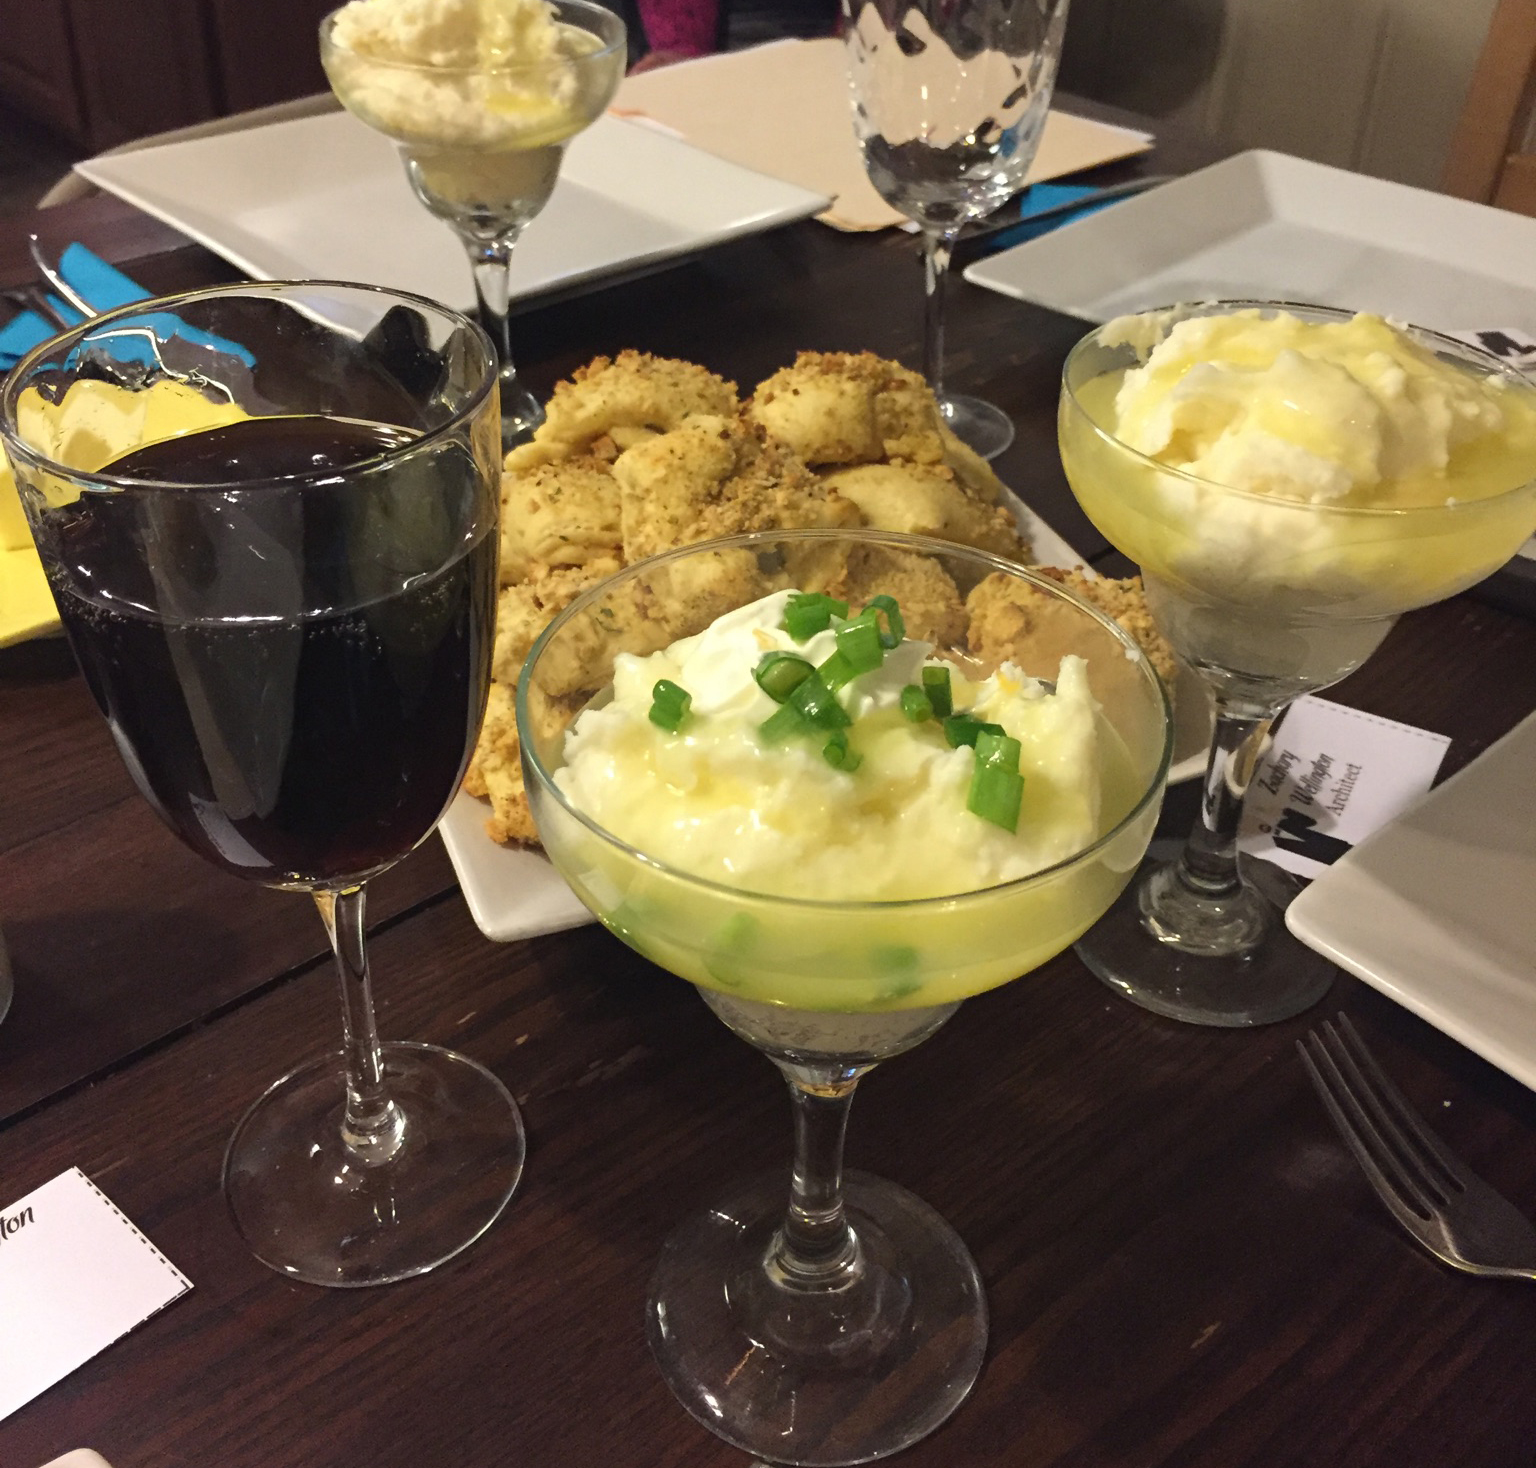 Mashed potato bar for murder mystery party